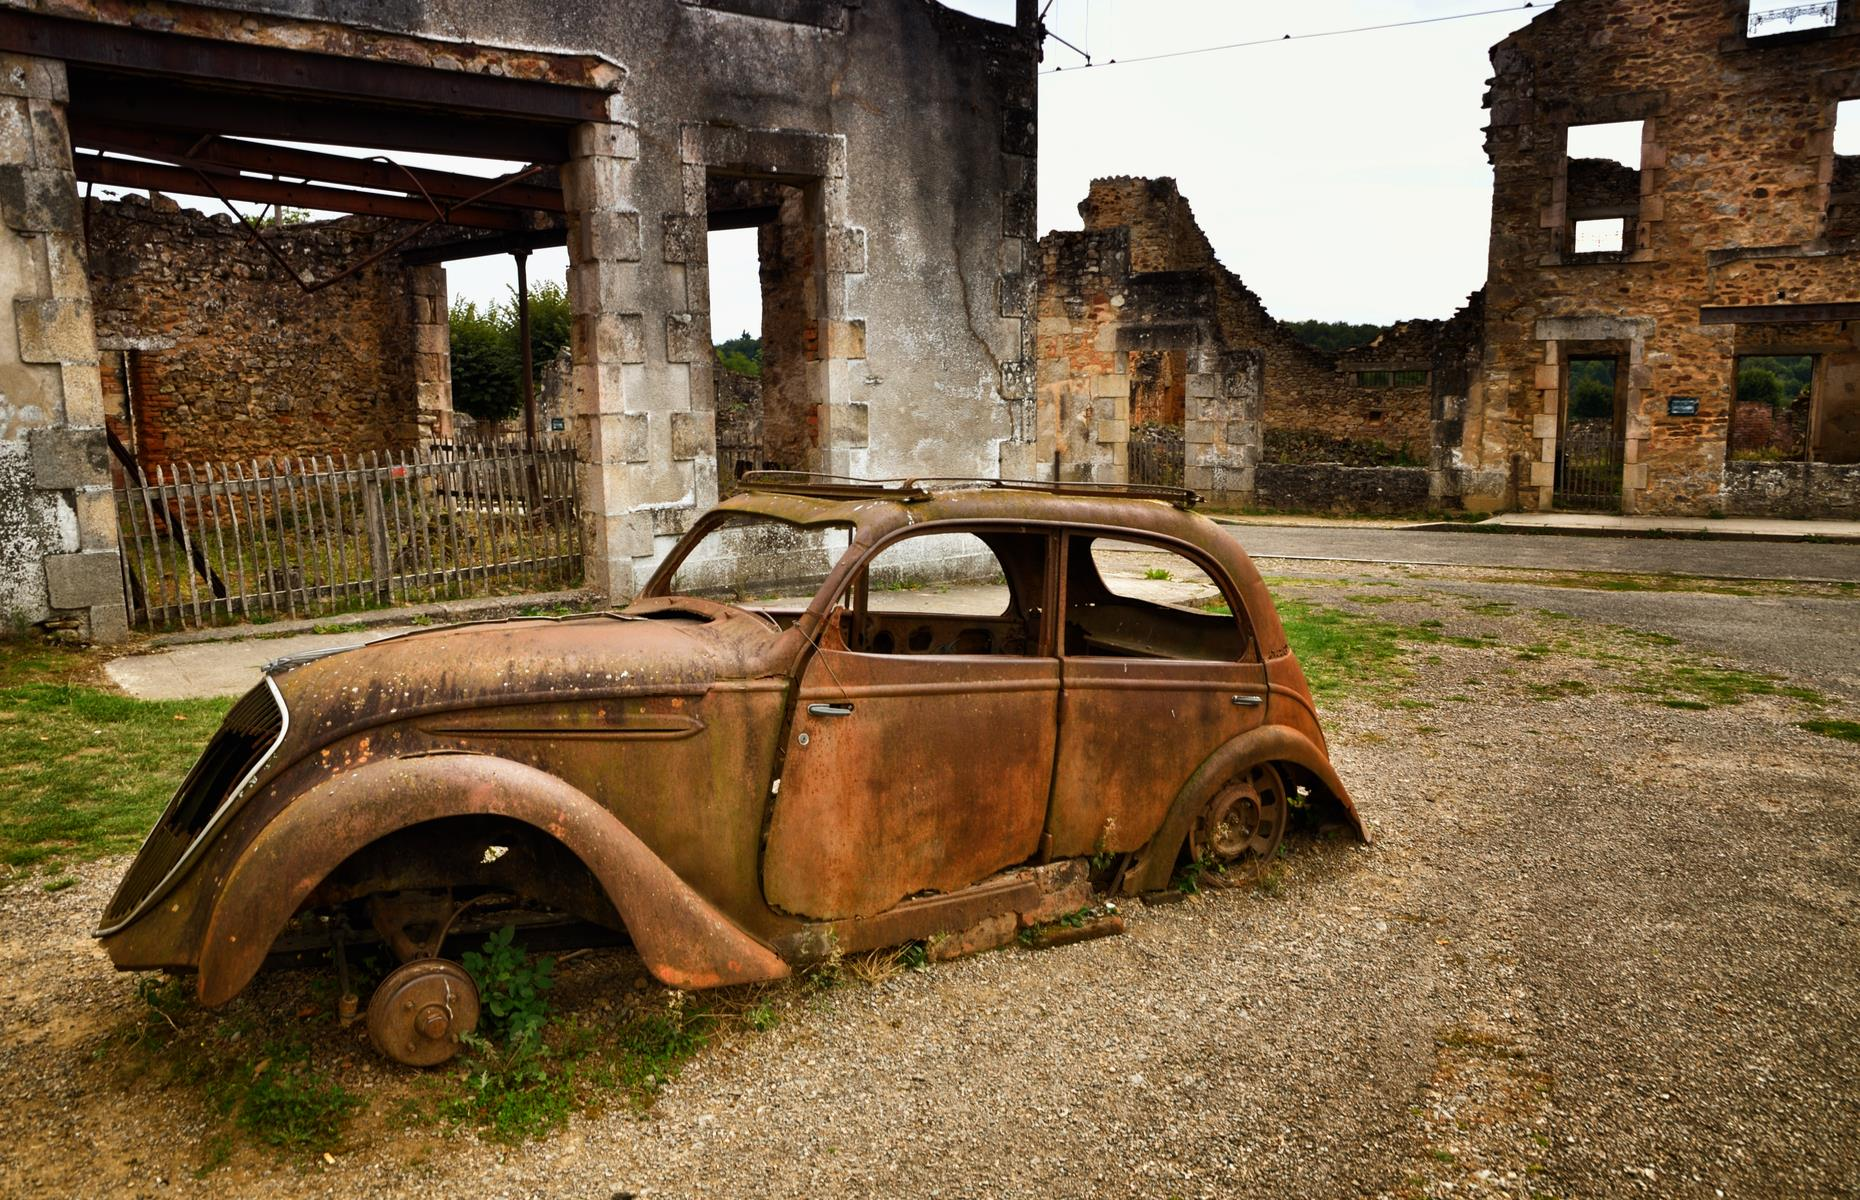 Slide 42 of 51: Three-quarters of a century later, the ghost town is a memorial to those who perished. Rusted cars, including the Peugeot 202 the mayor drove before his brutal death, still sit on the roads.Discover theincredible pictures of tourist attractions that no longer exist.